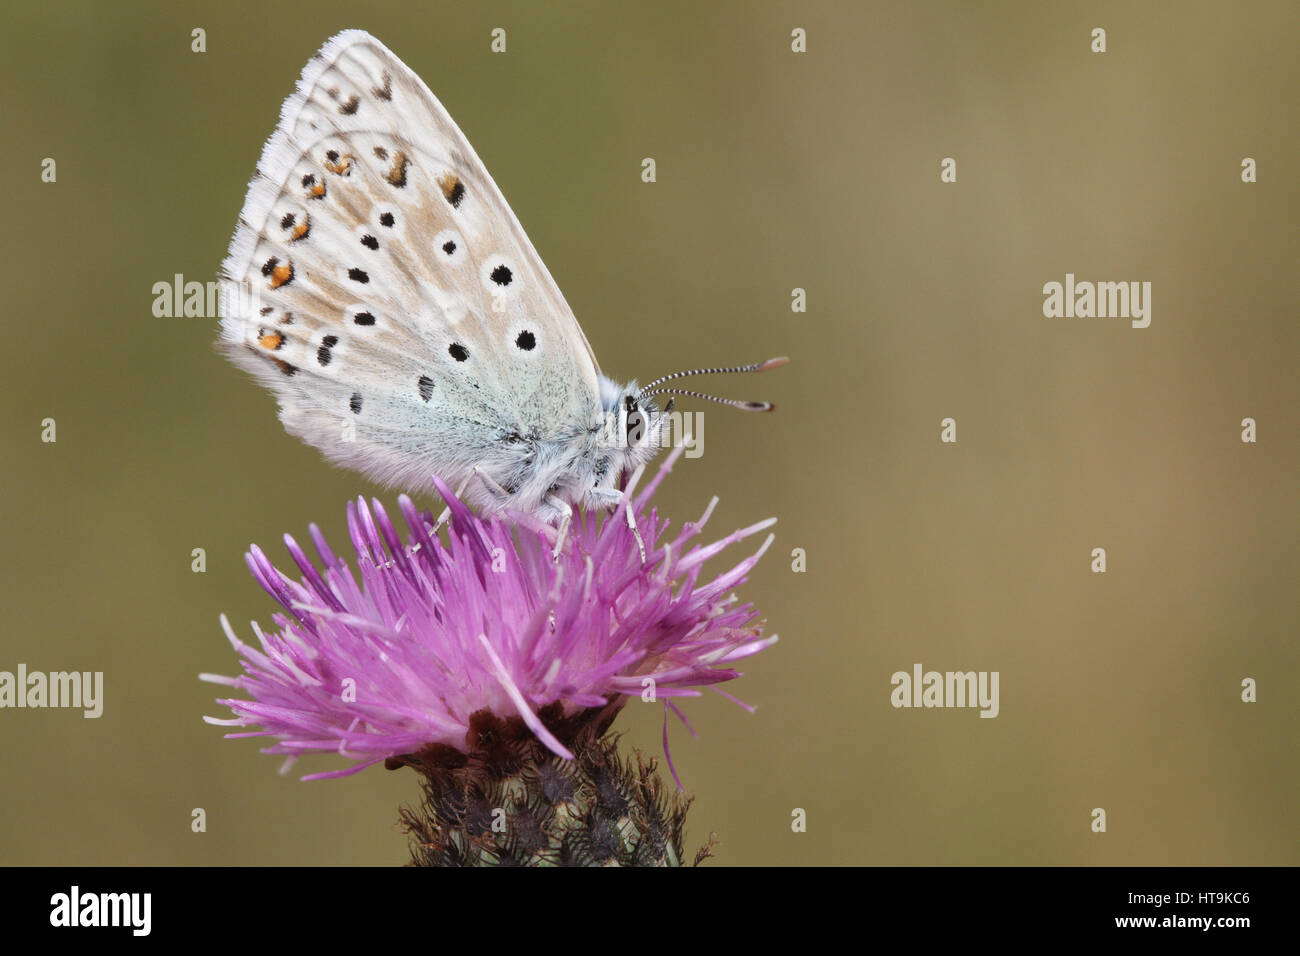 A Chalk Hill Blue Butterfly (Polyommatus coridon) perched on a flower. - Stock Image